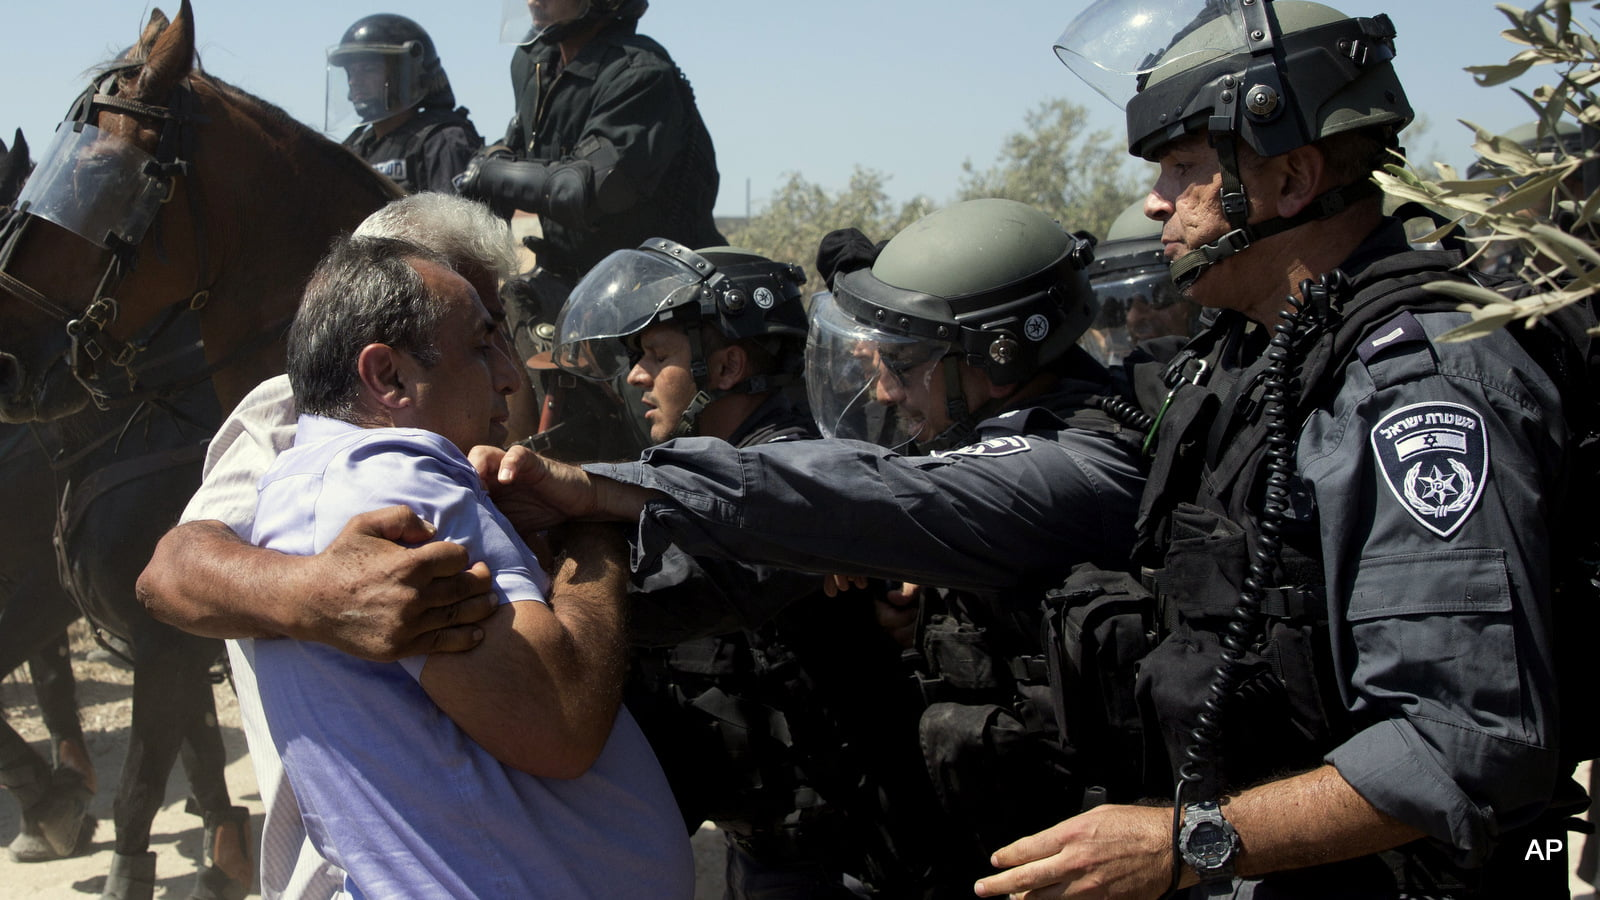 Israeli riot policescuffle with Arab men during a protest in Arab village of Ara, northern Israel, Sept. 19, 2016. AP Photo